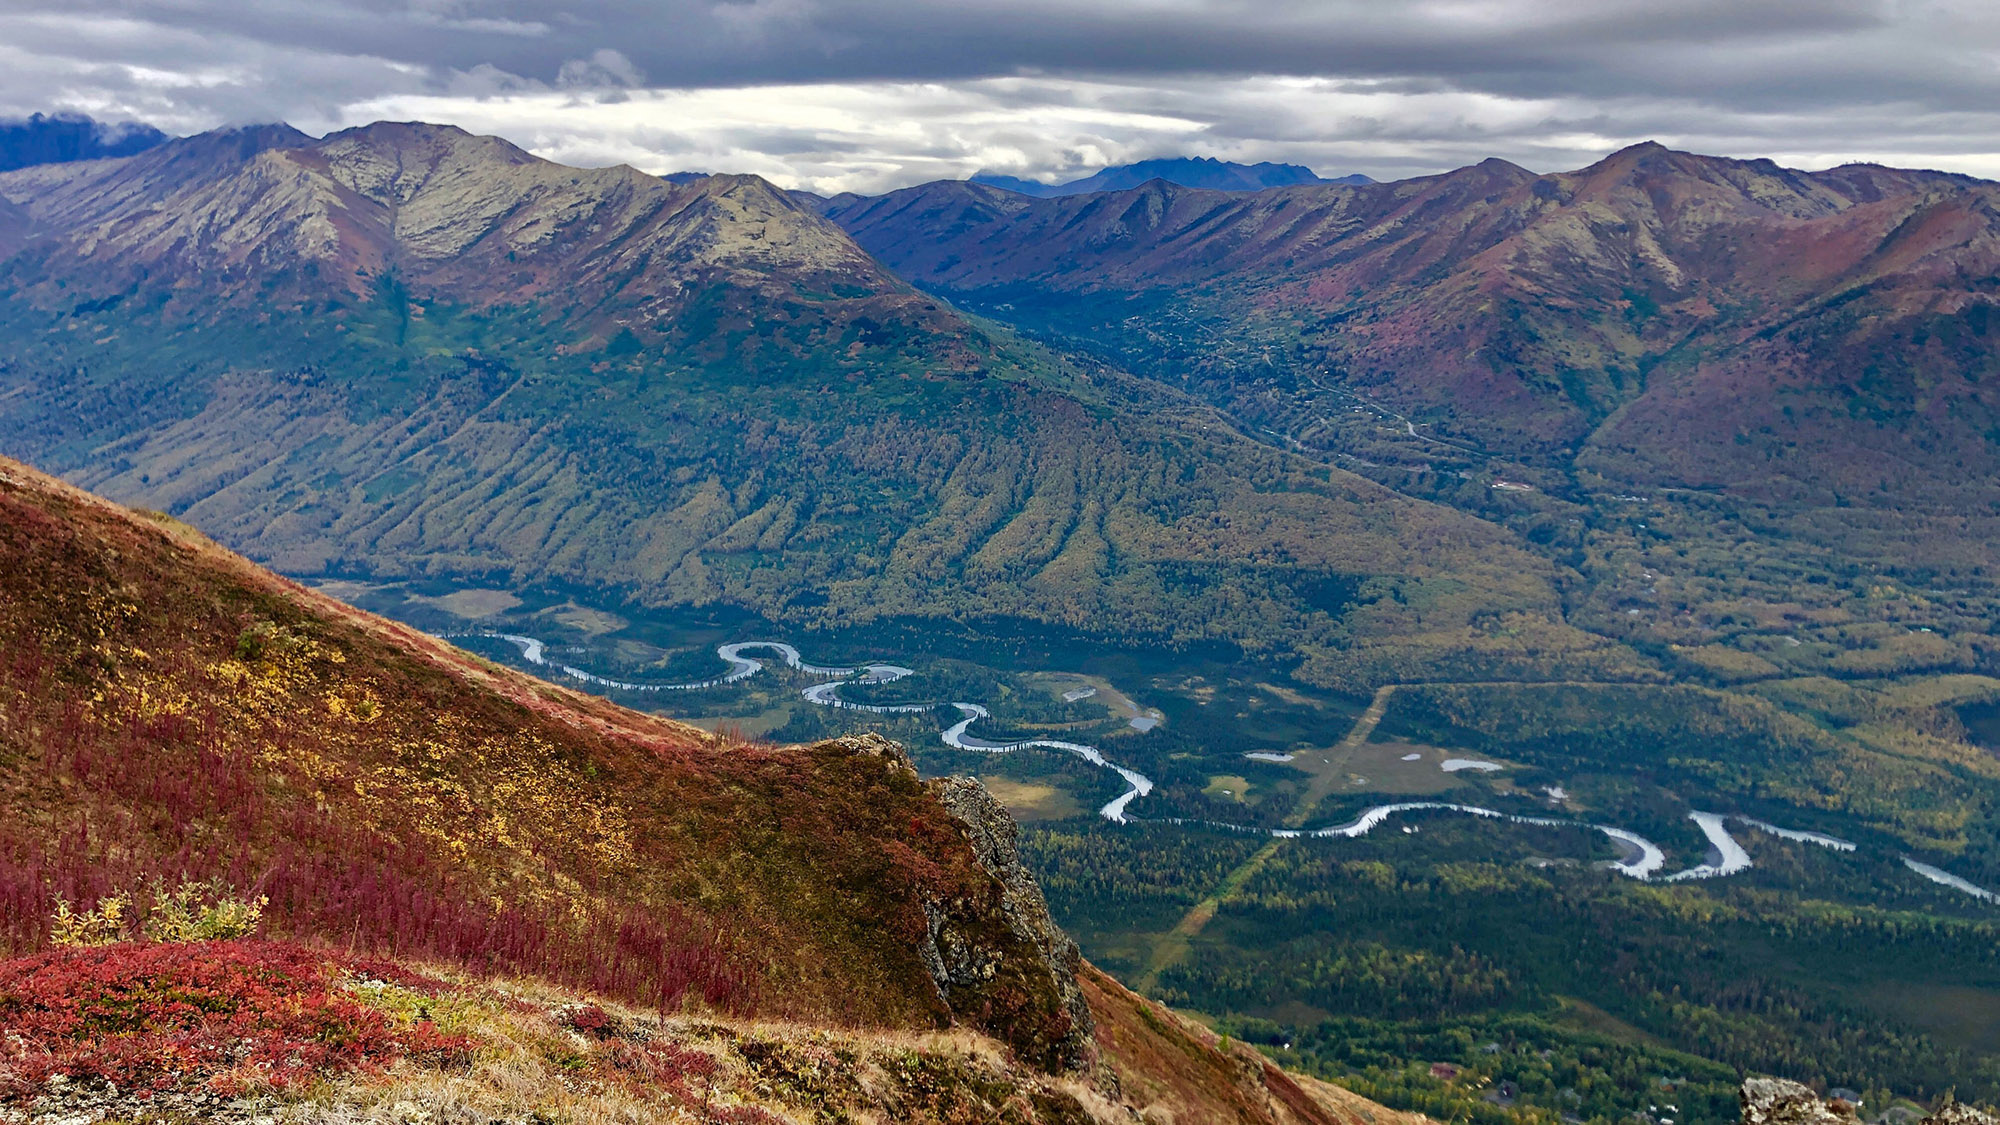 Chugach was designated a state park on Aug. 6, 1970.